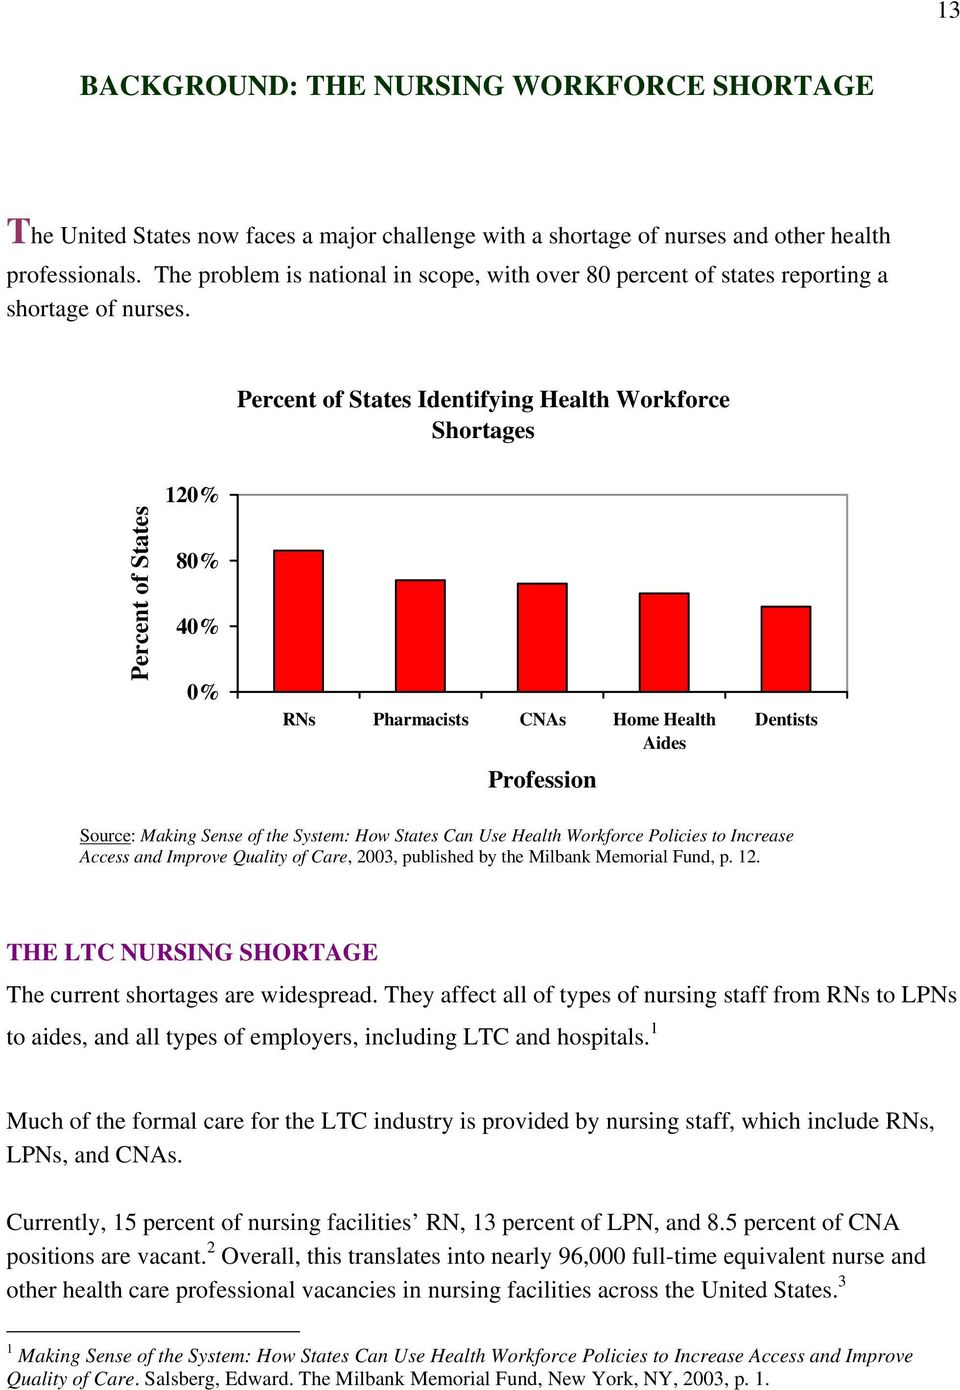 Percent of States Identifying Health Workforce Shortages Percent of States 120% 80% 40% 0% RNs Pharmacists CNAs Home Health Aides Profession Dentists Source: Making Sense of the System: How States